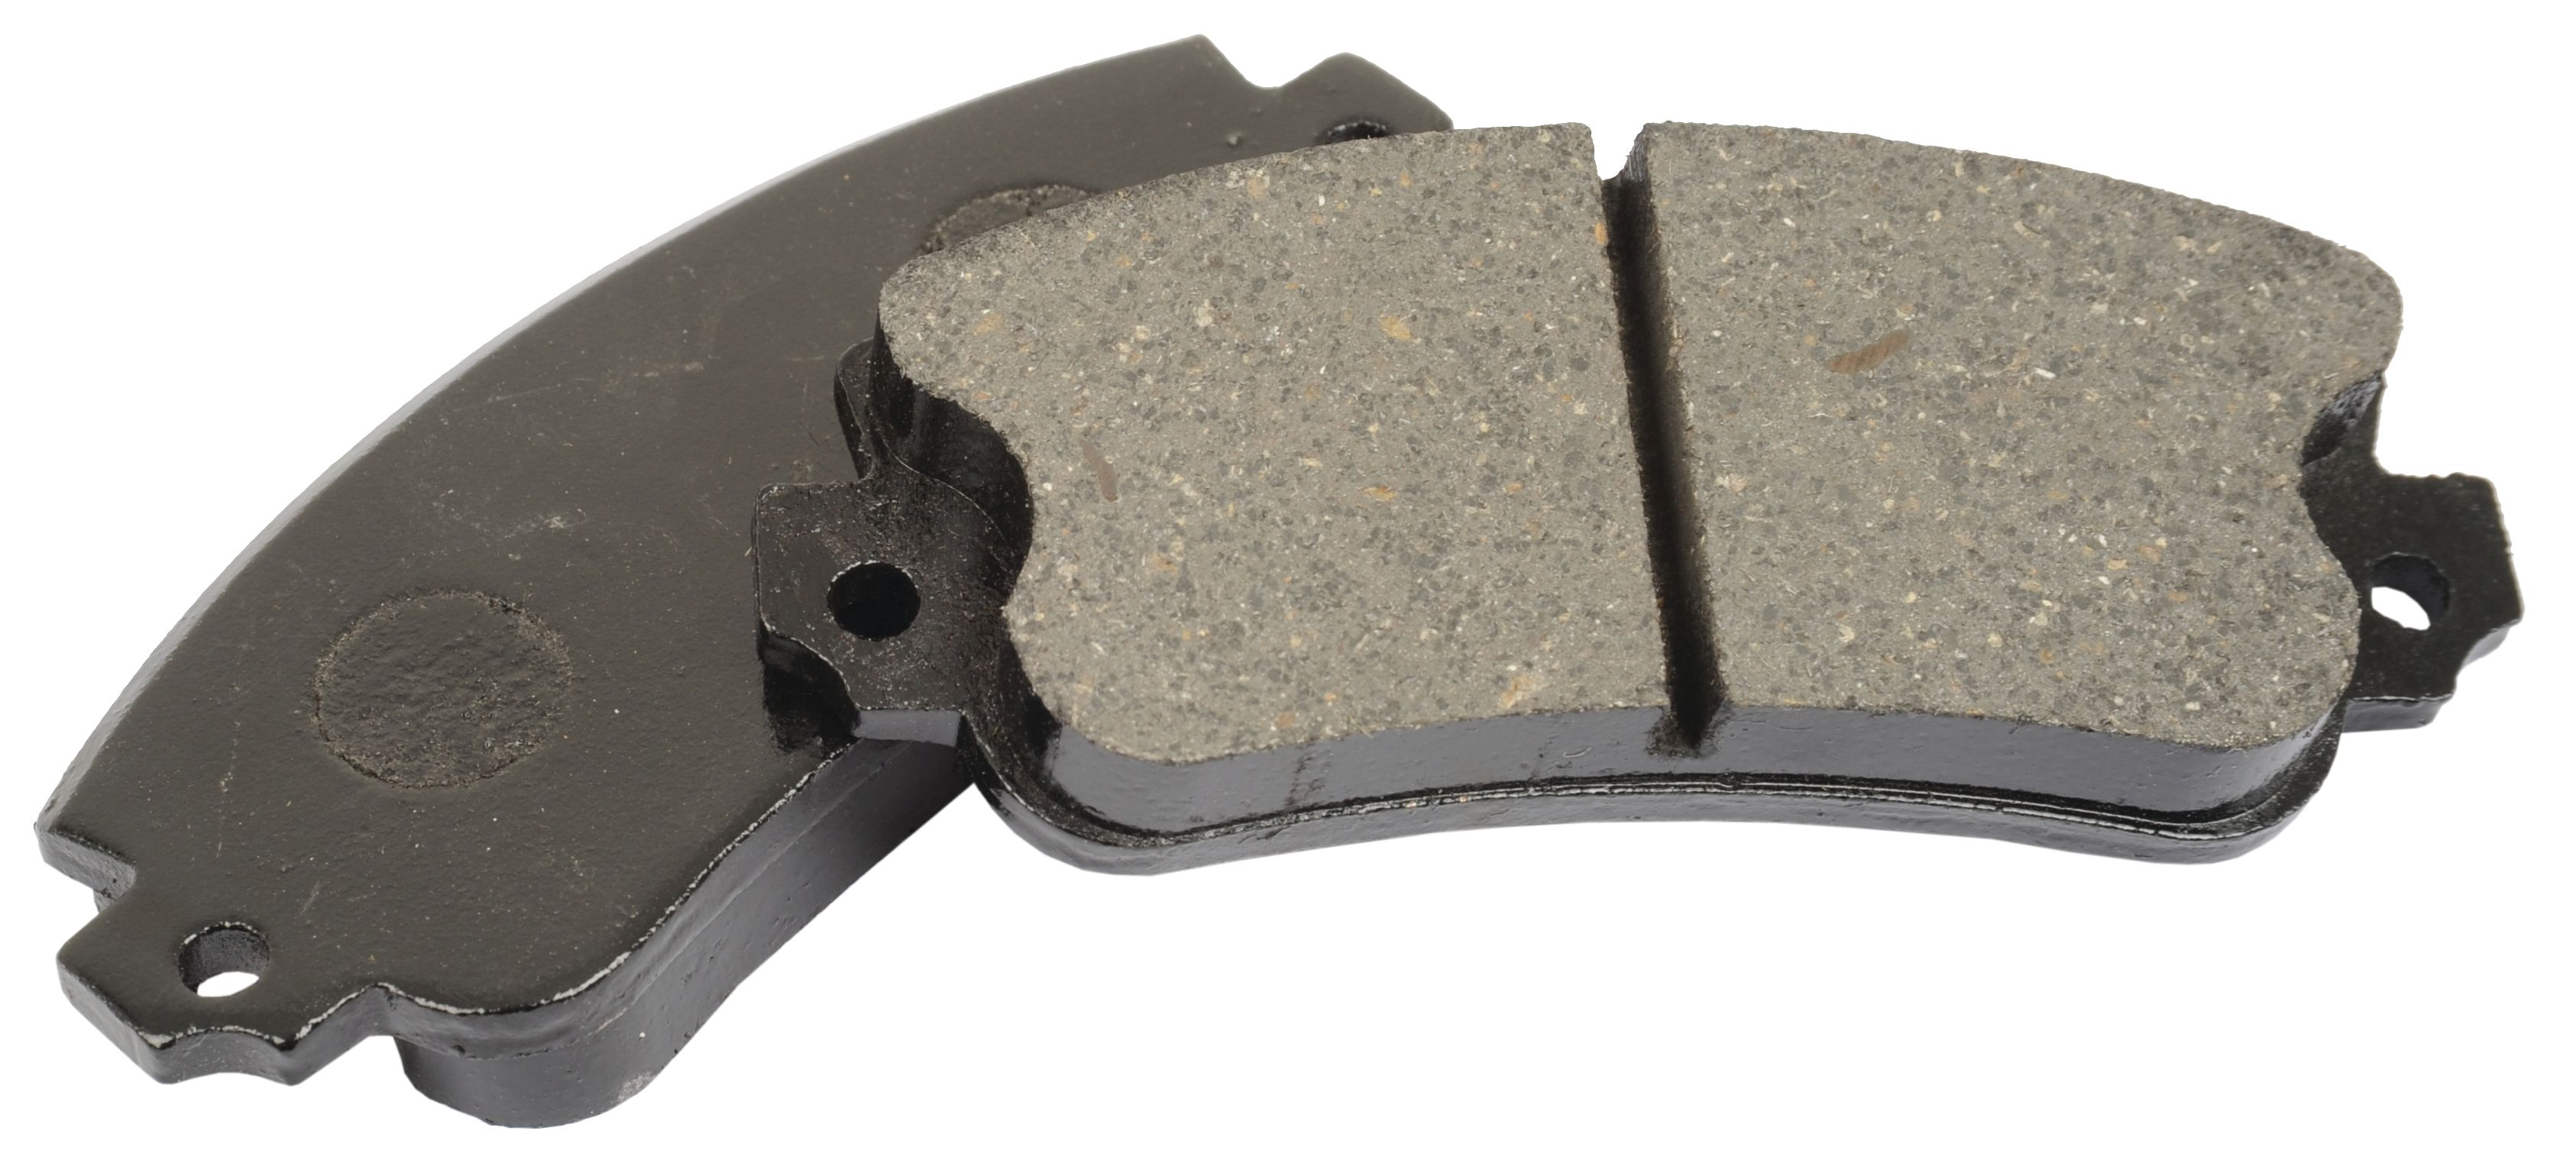 MERLO BRAKE PAD HANDBRAKE 102721